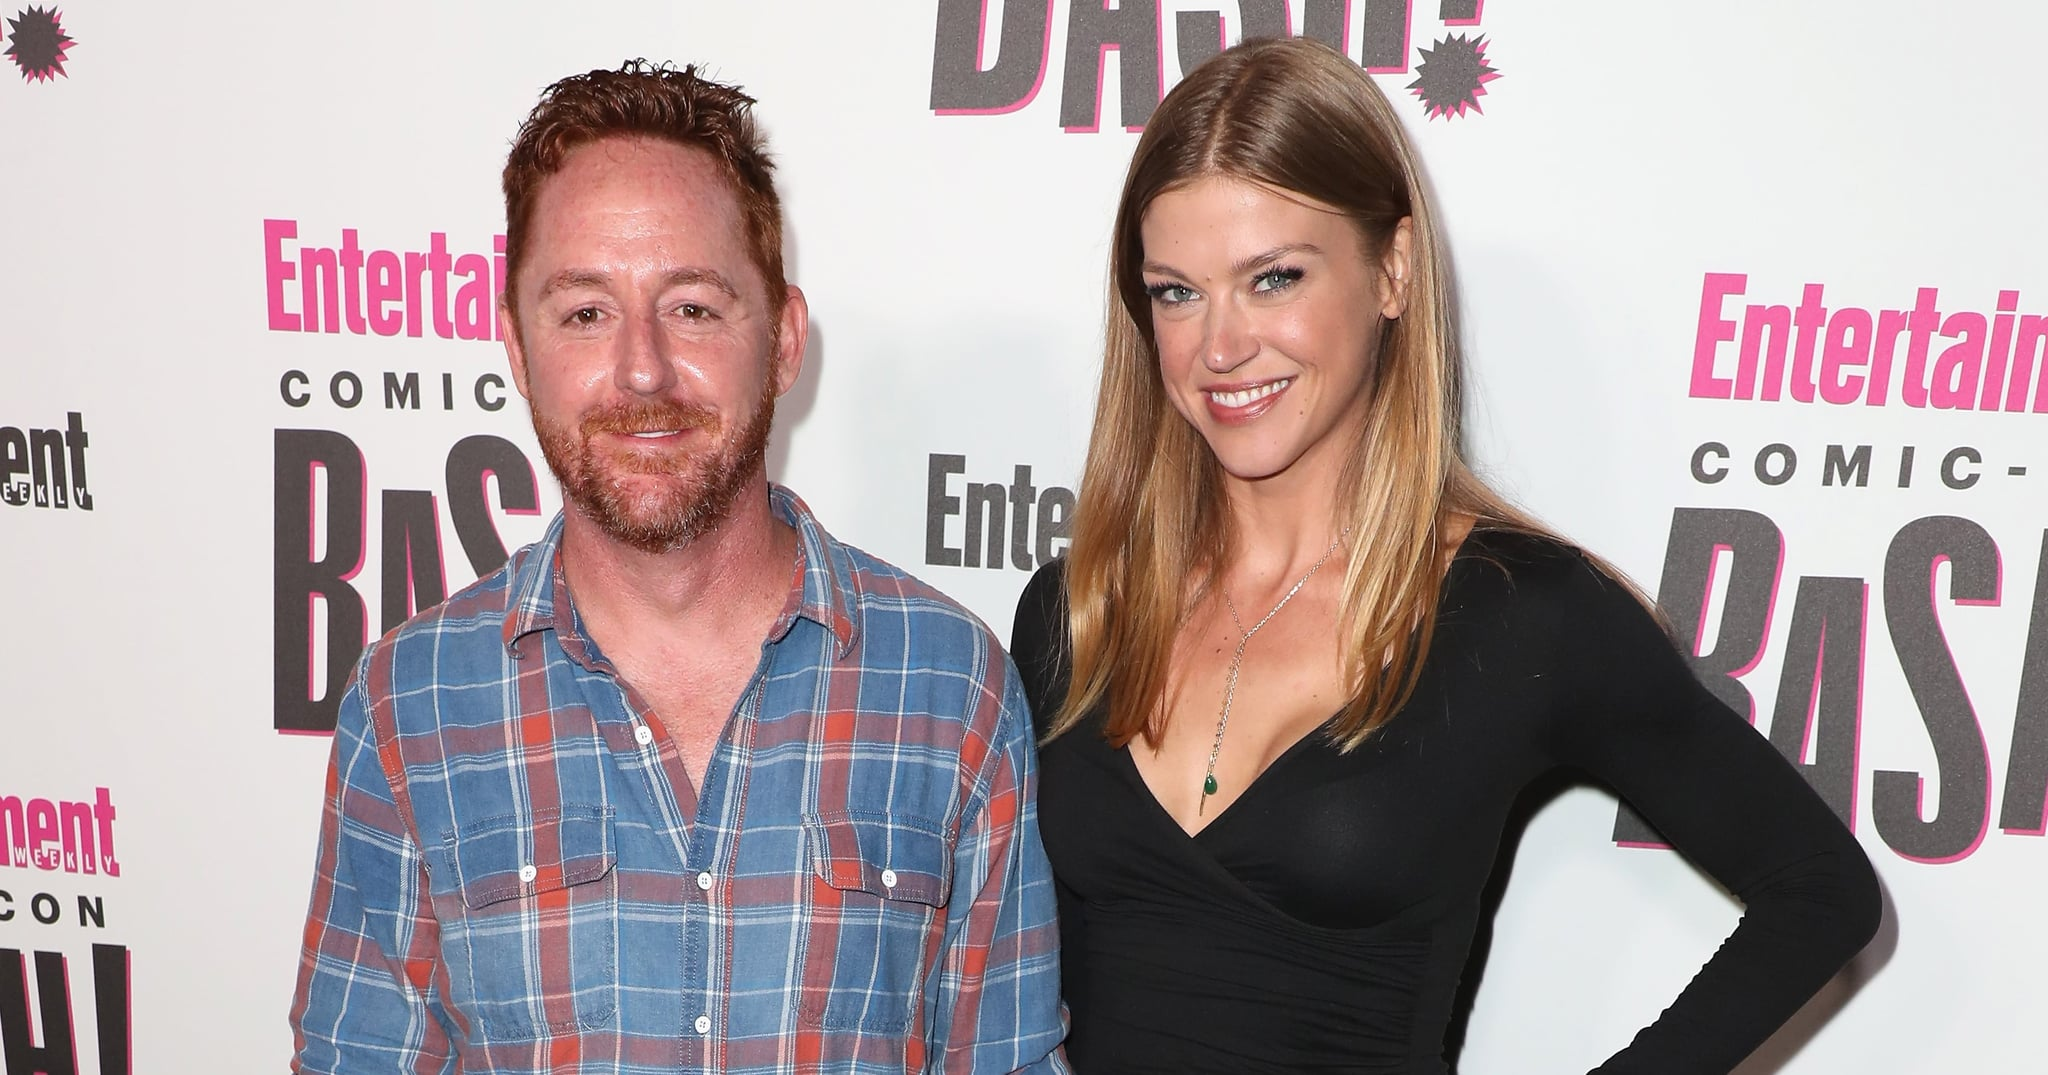 The Orville's Adrianne Palicki and Scott Grimes Are Separating After 2 Months of Marriage